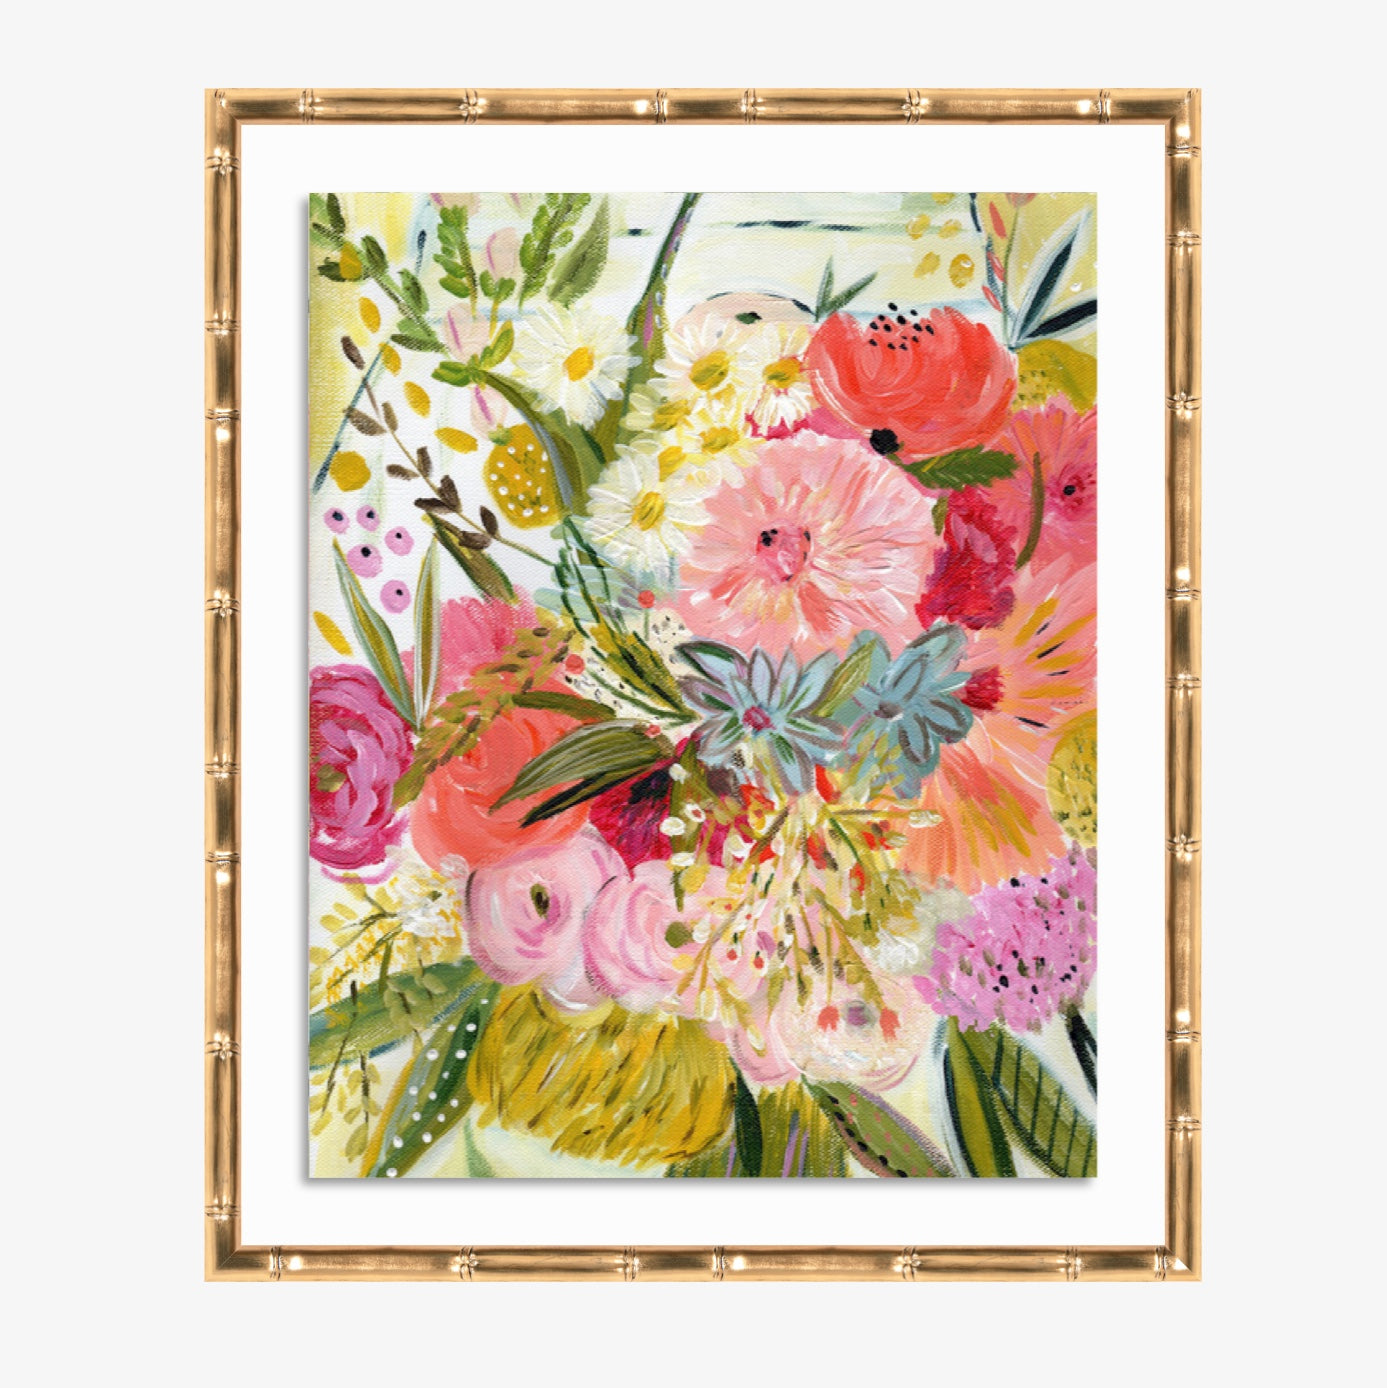 A bouquet for Jeni by Bari J. in Framebridge Lucia Frame